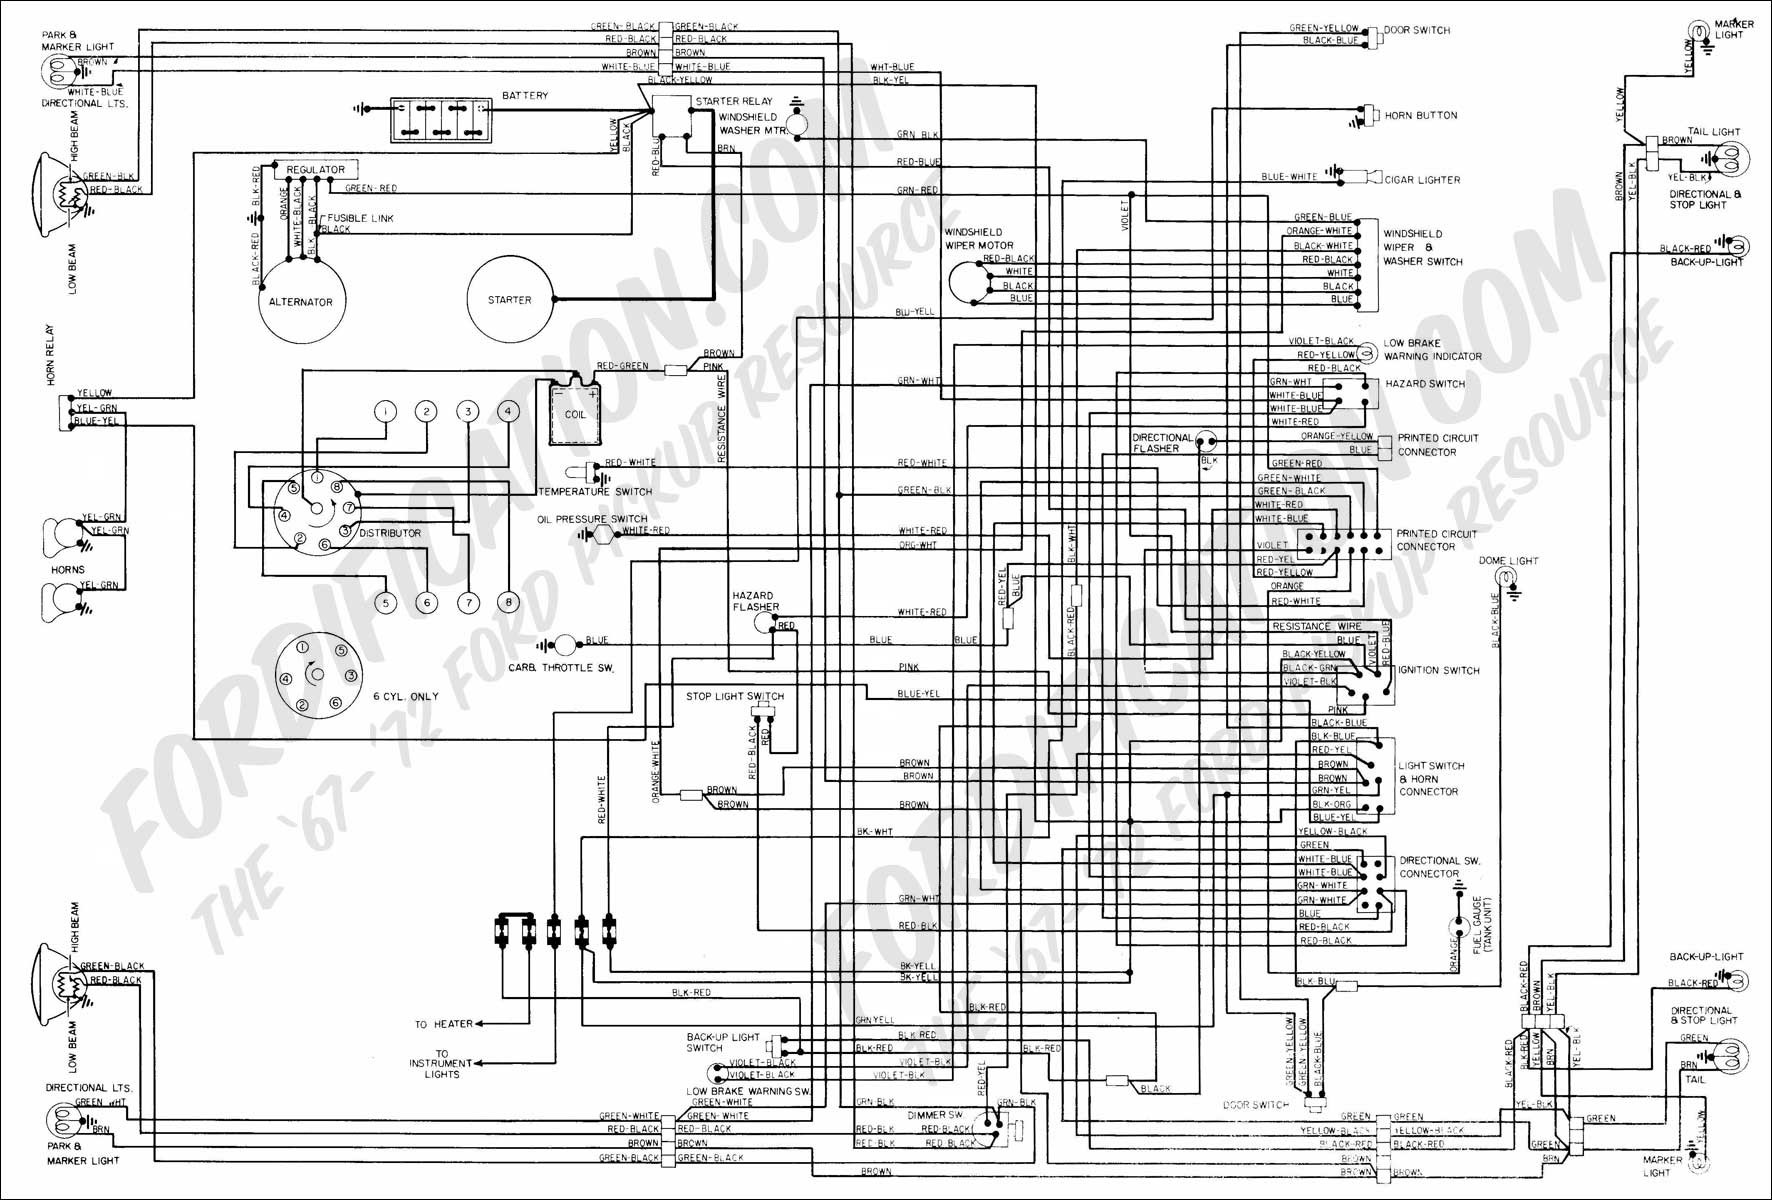 Ford 6 0 Engine Diagram ford F350 Wiring Diagram 5 Lenito Of Ford 6 0 Engine Diagram